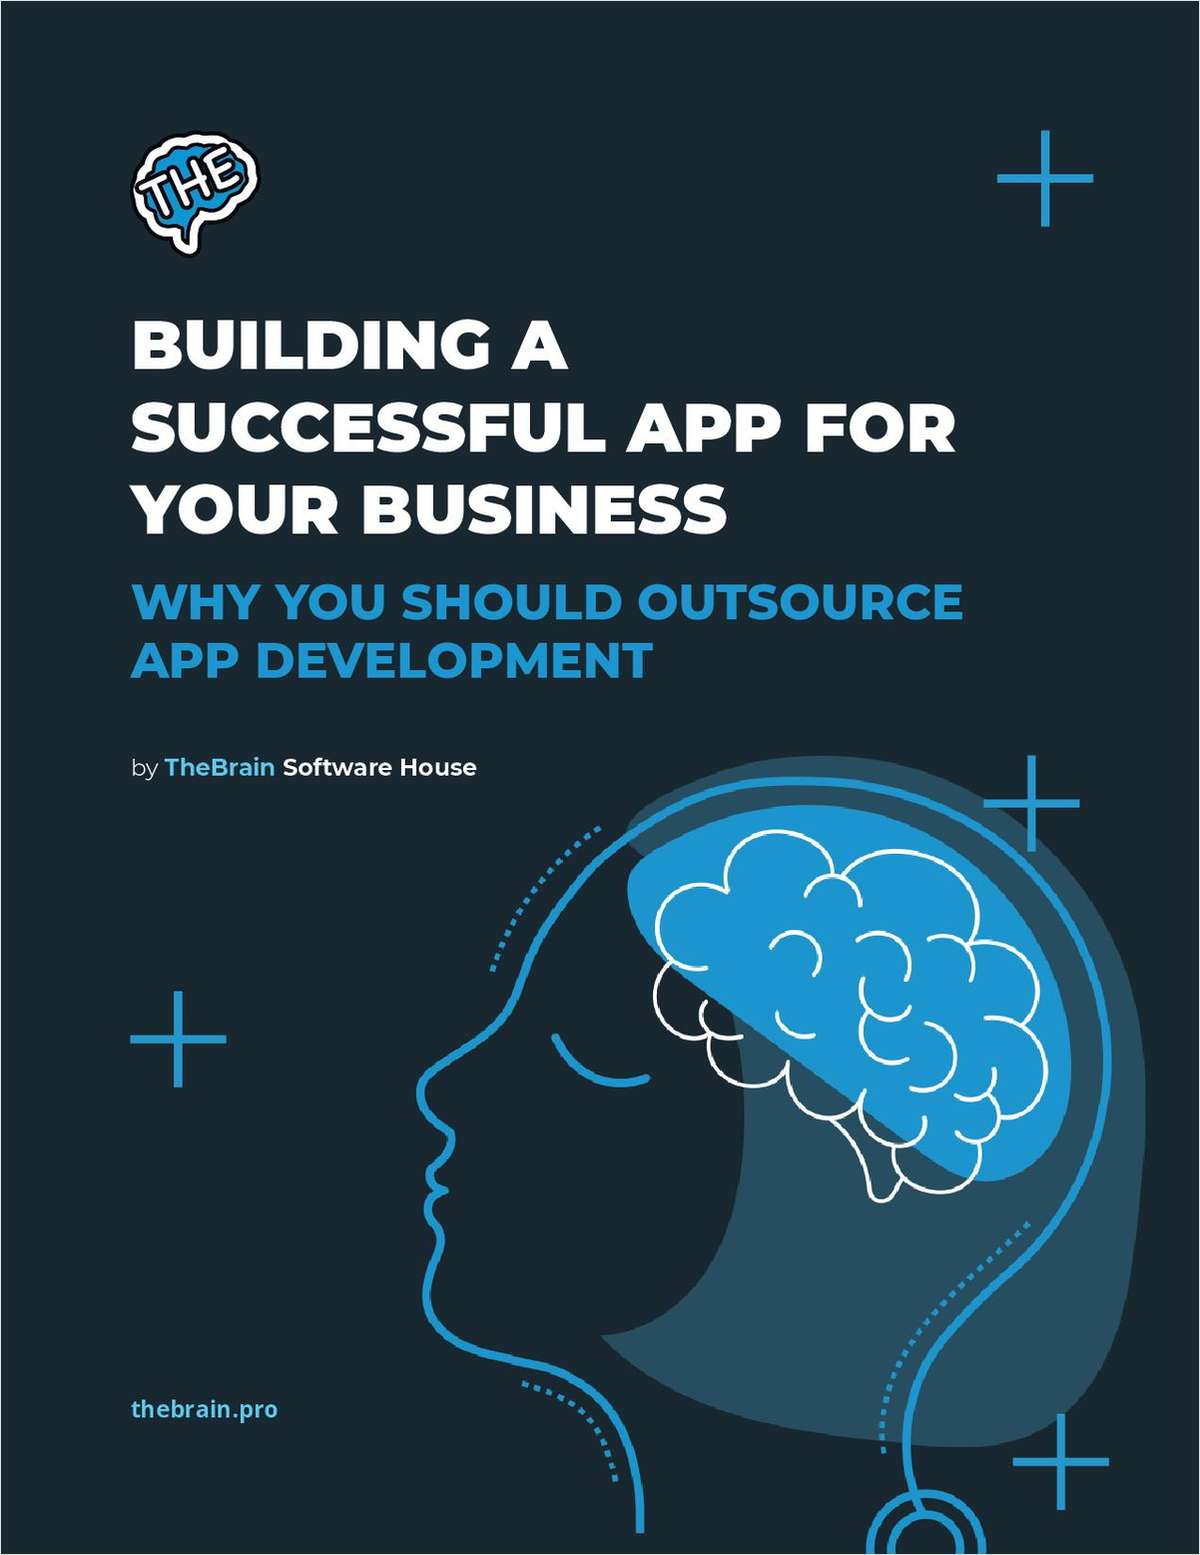 Building a Successful App for Your Business